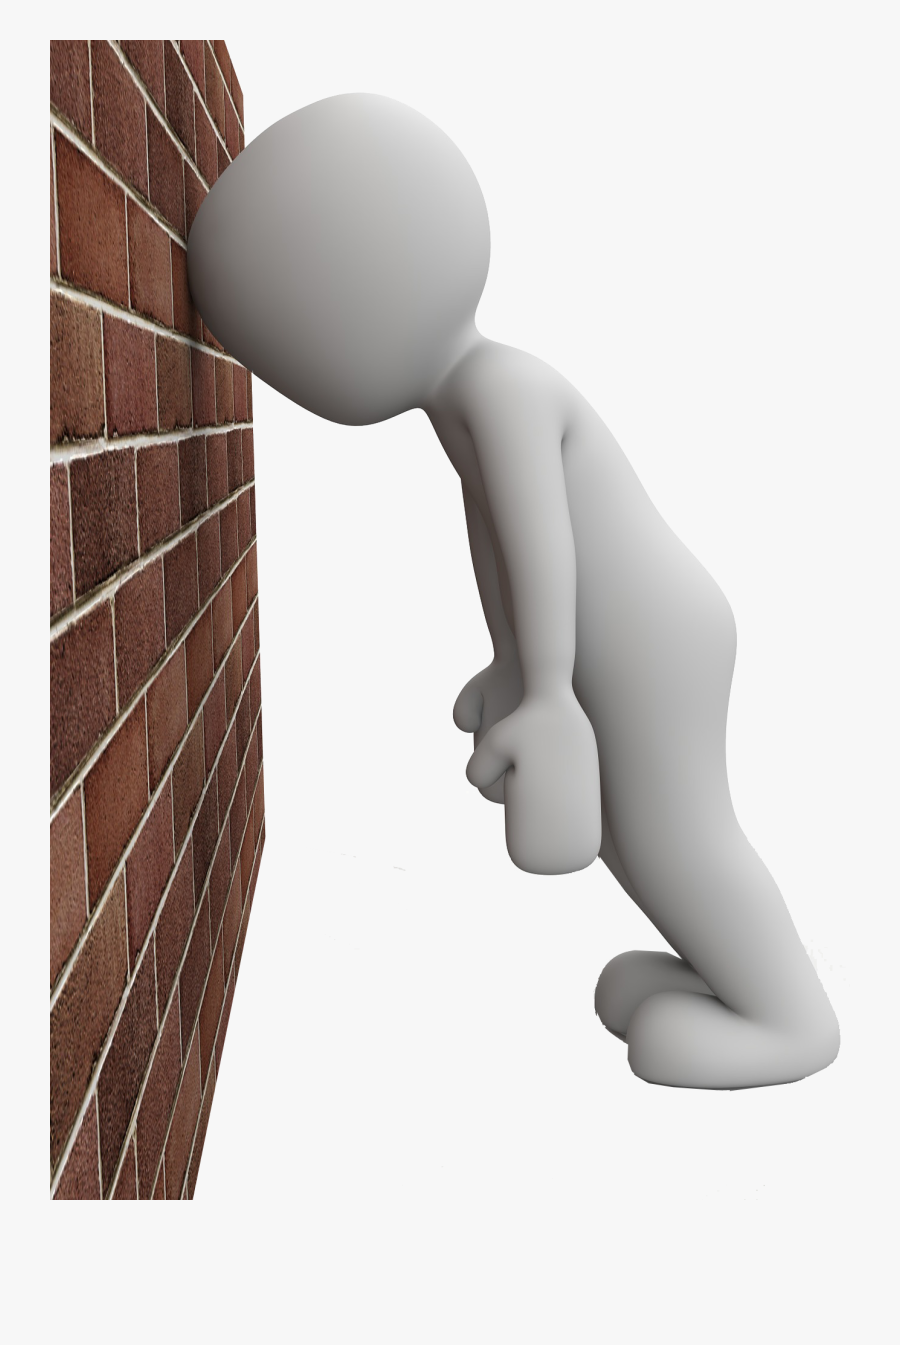 Transparent Banging Head Against Wall Clipart - Bang Head Against Wall Clipart, Transparent Clipart